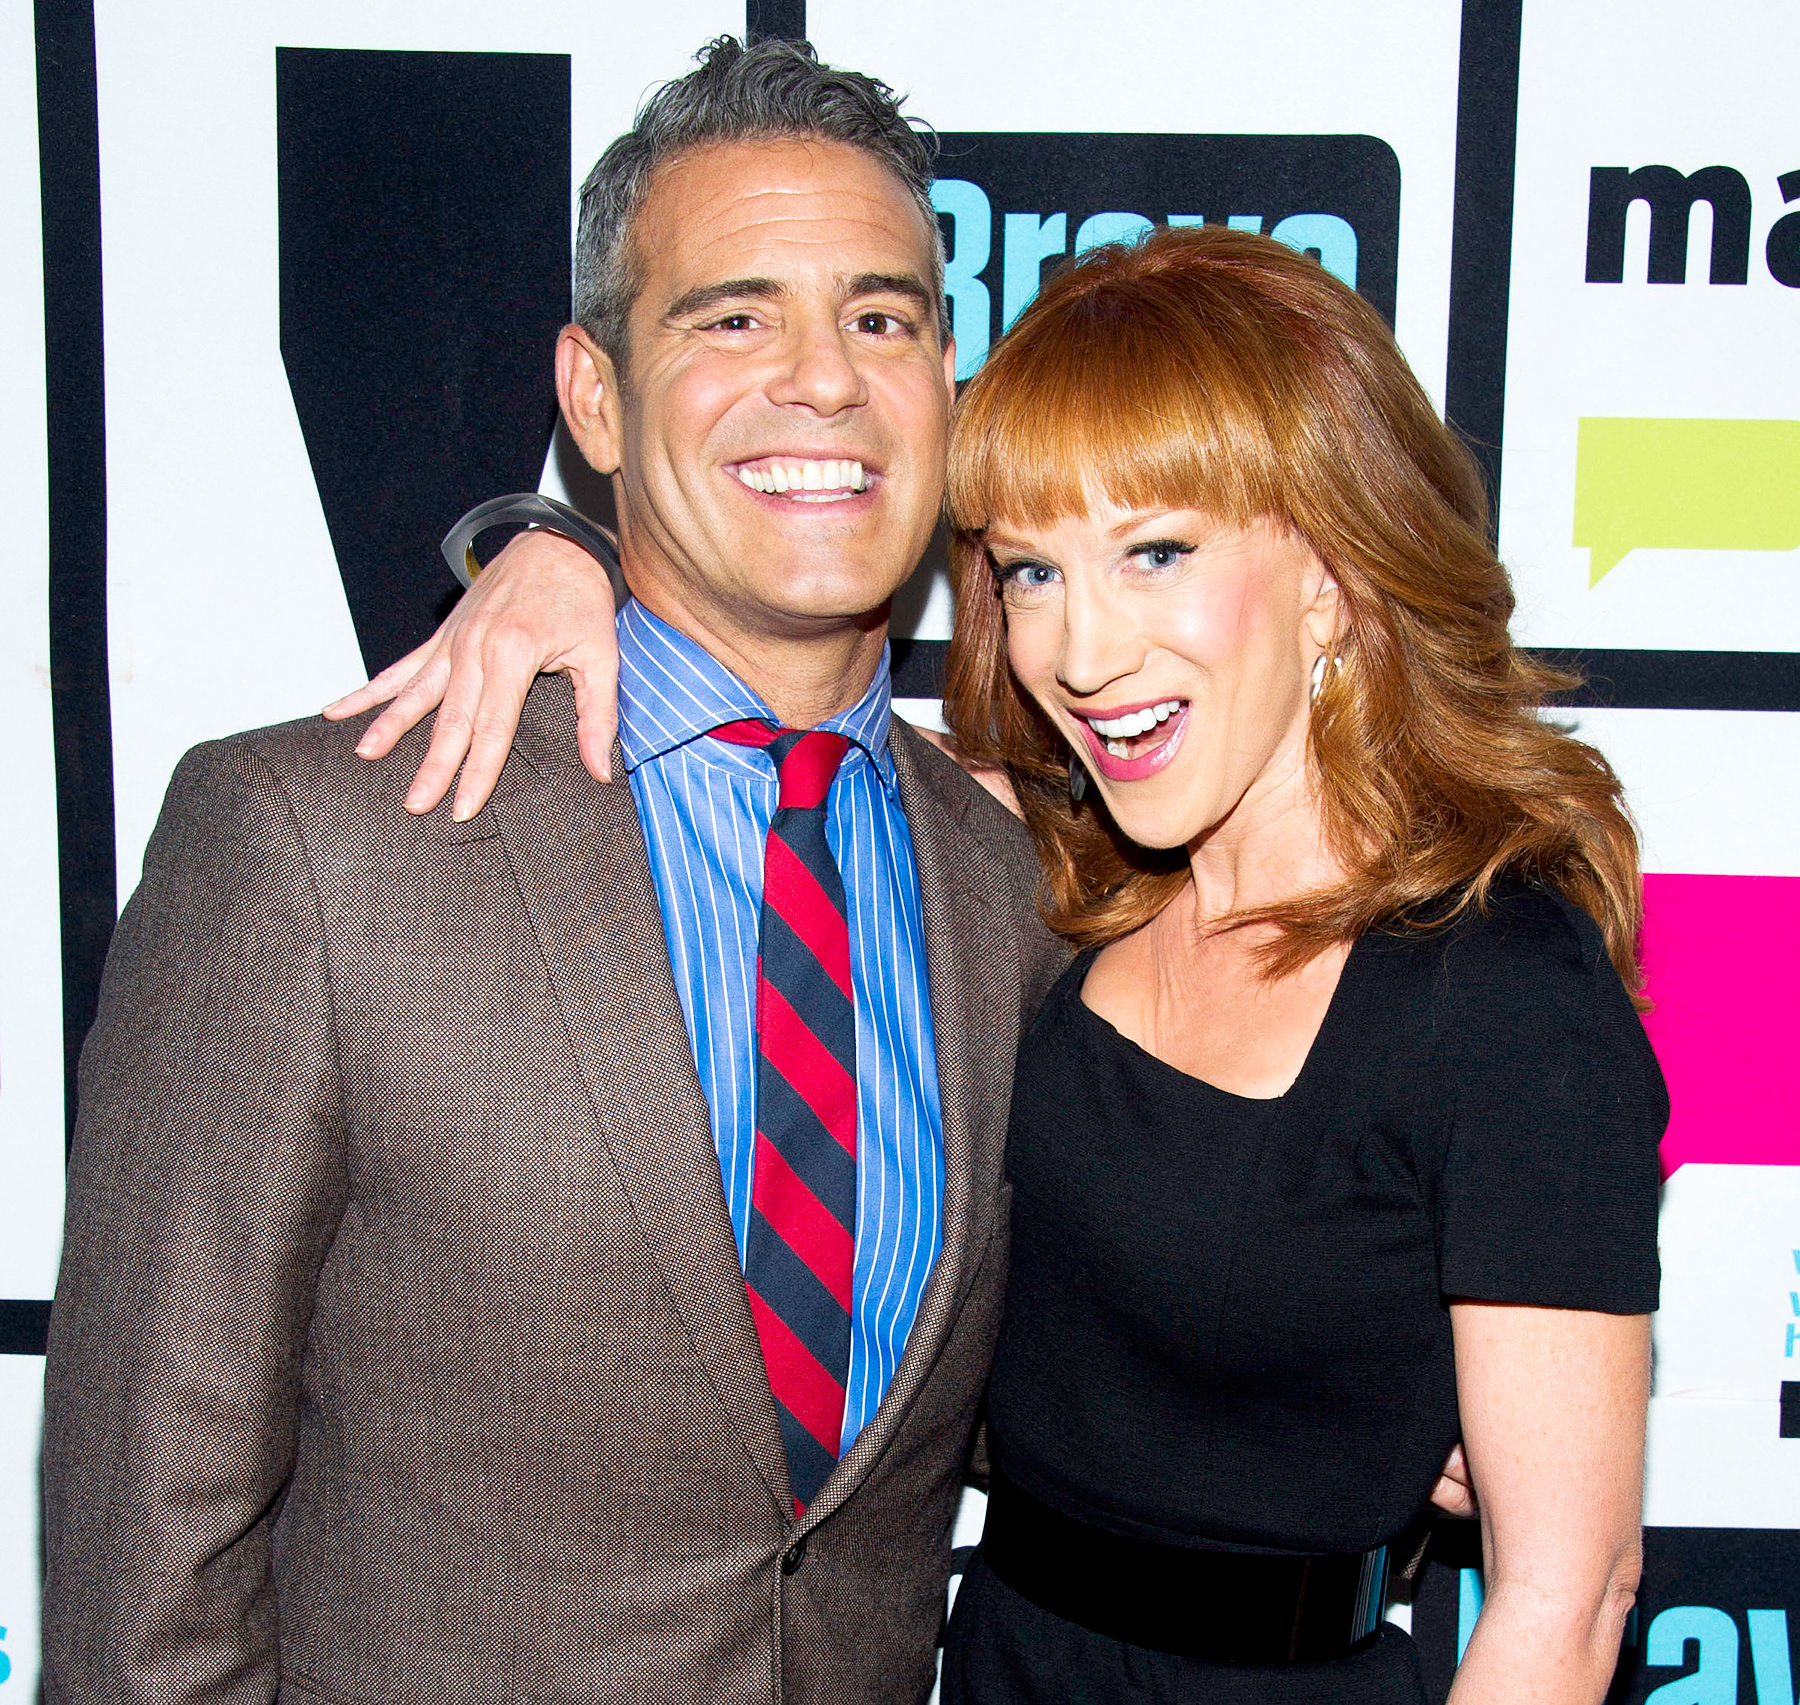 Kathy Griffin Blasts TMZ's Harvey Levin, Releases His Personal Number